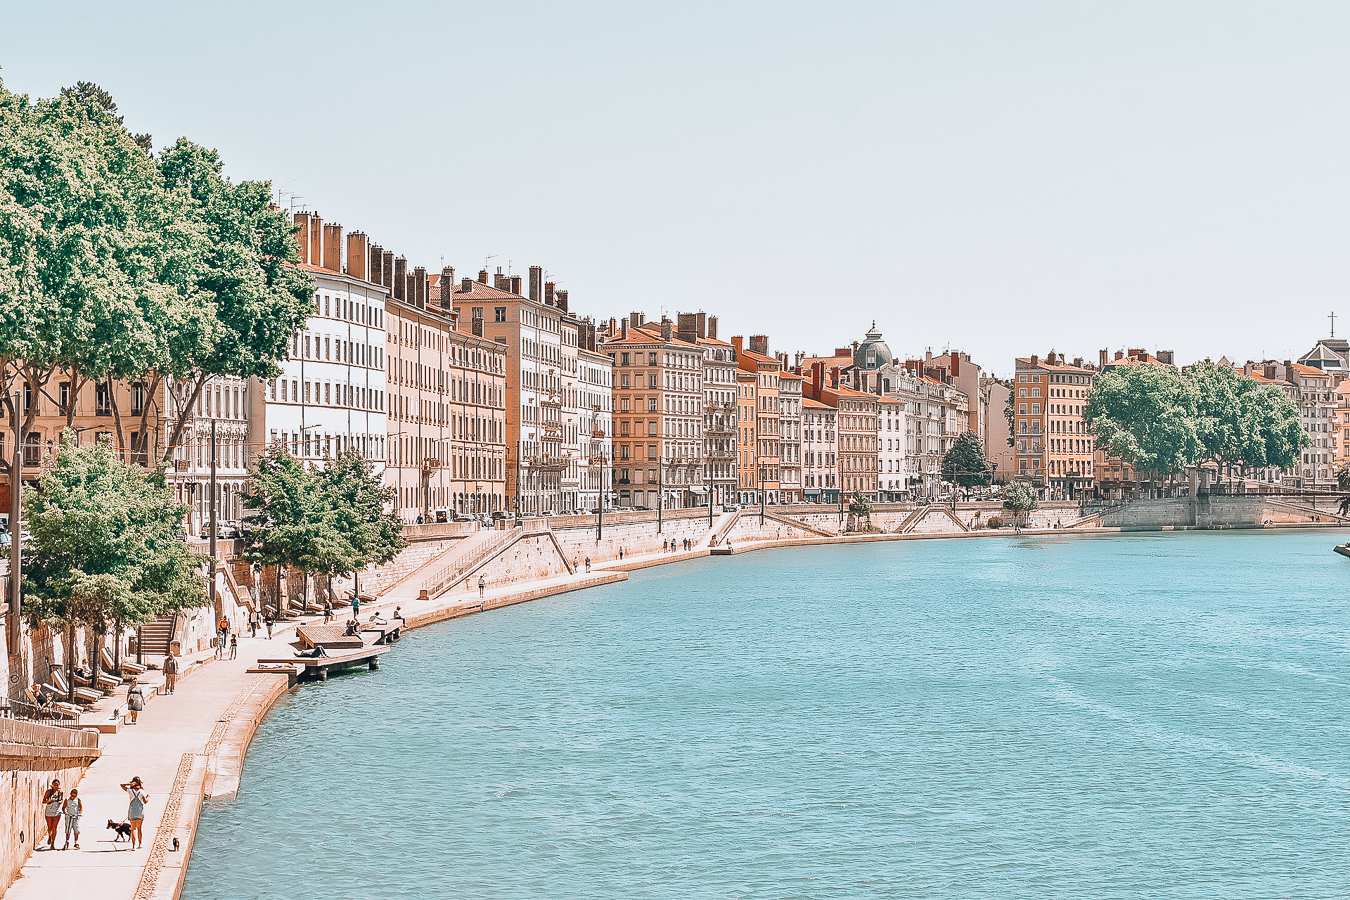 Water and houses in Lyon